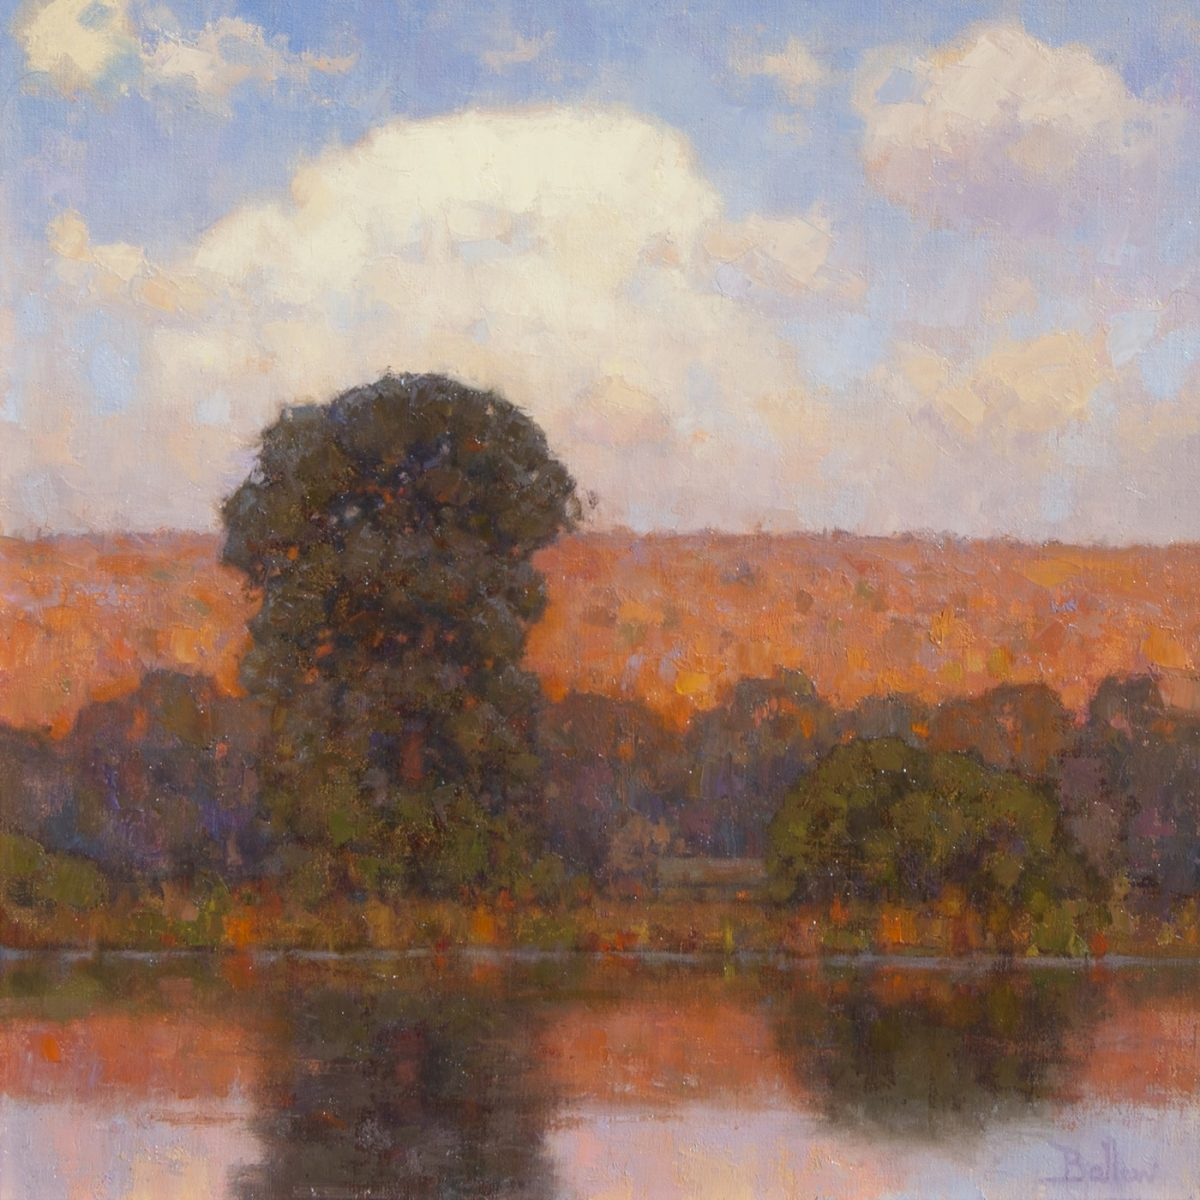 Evening Along the River painting by David Ballew